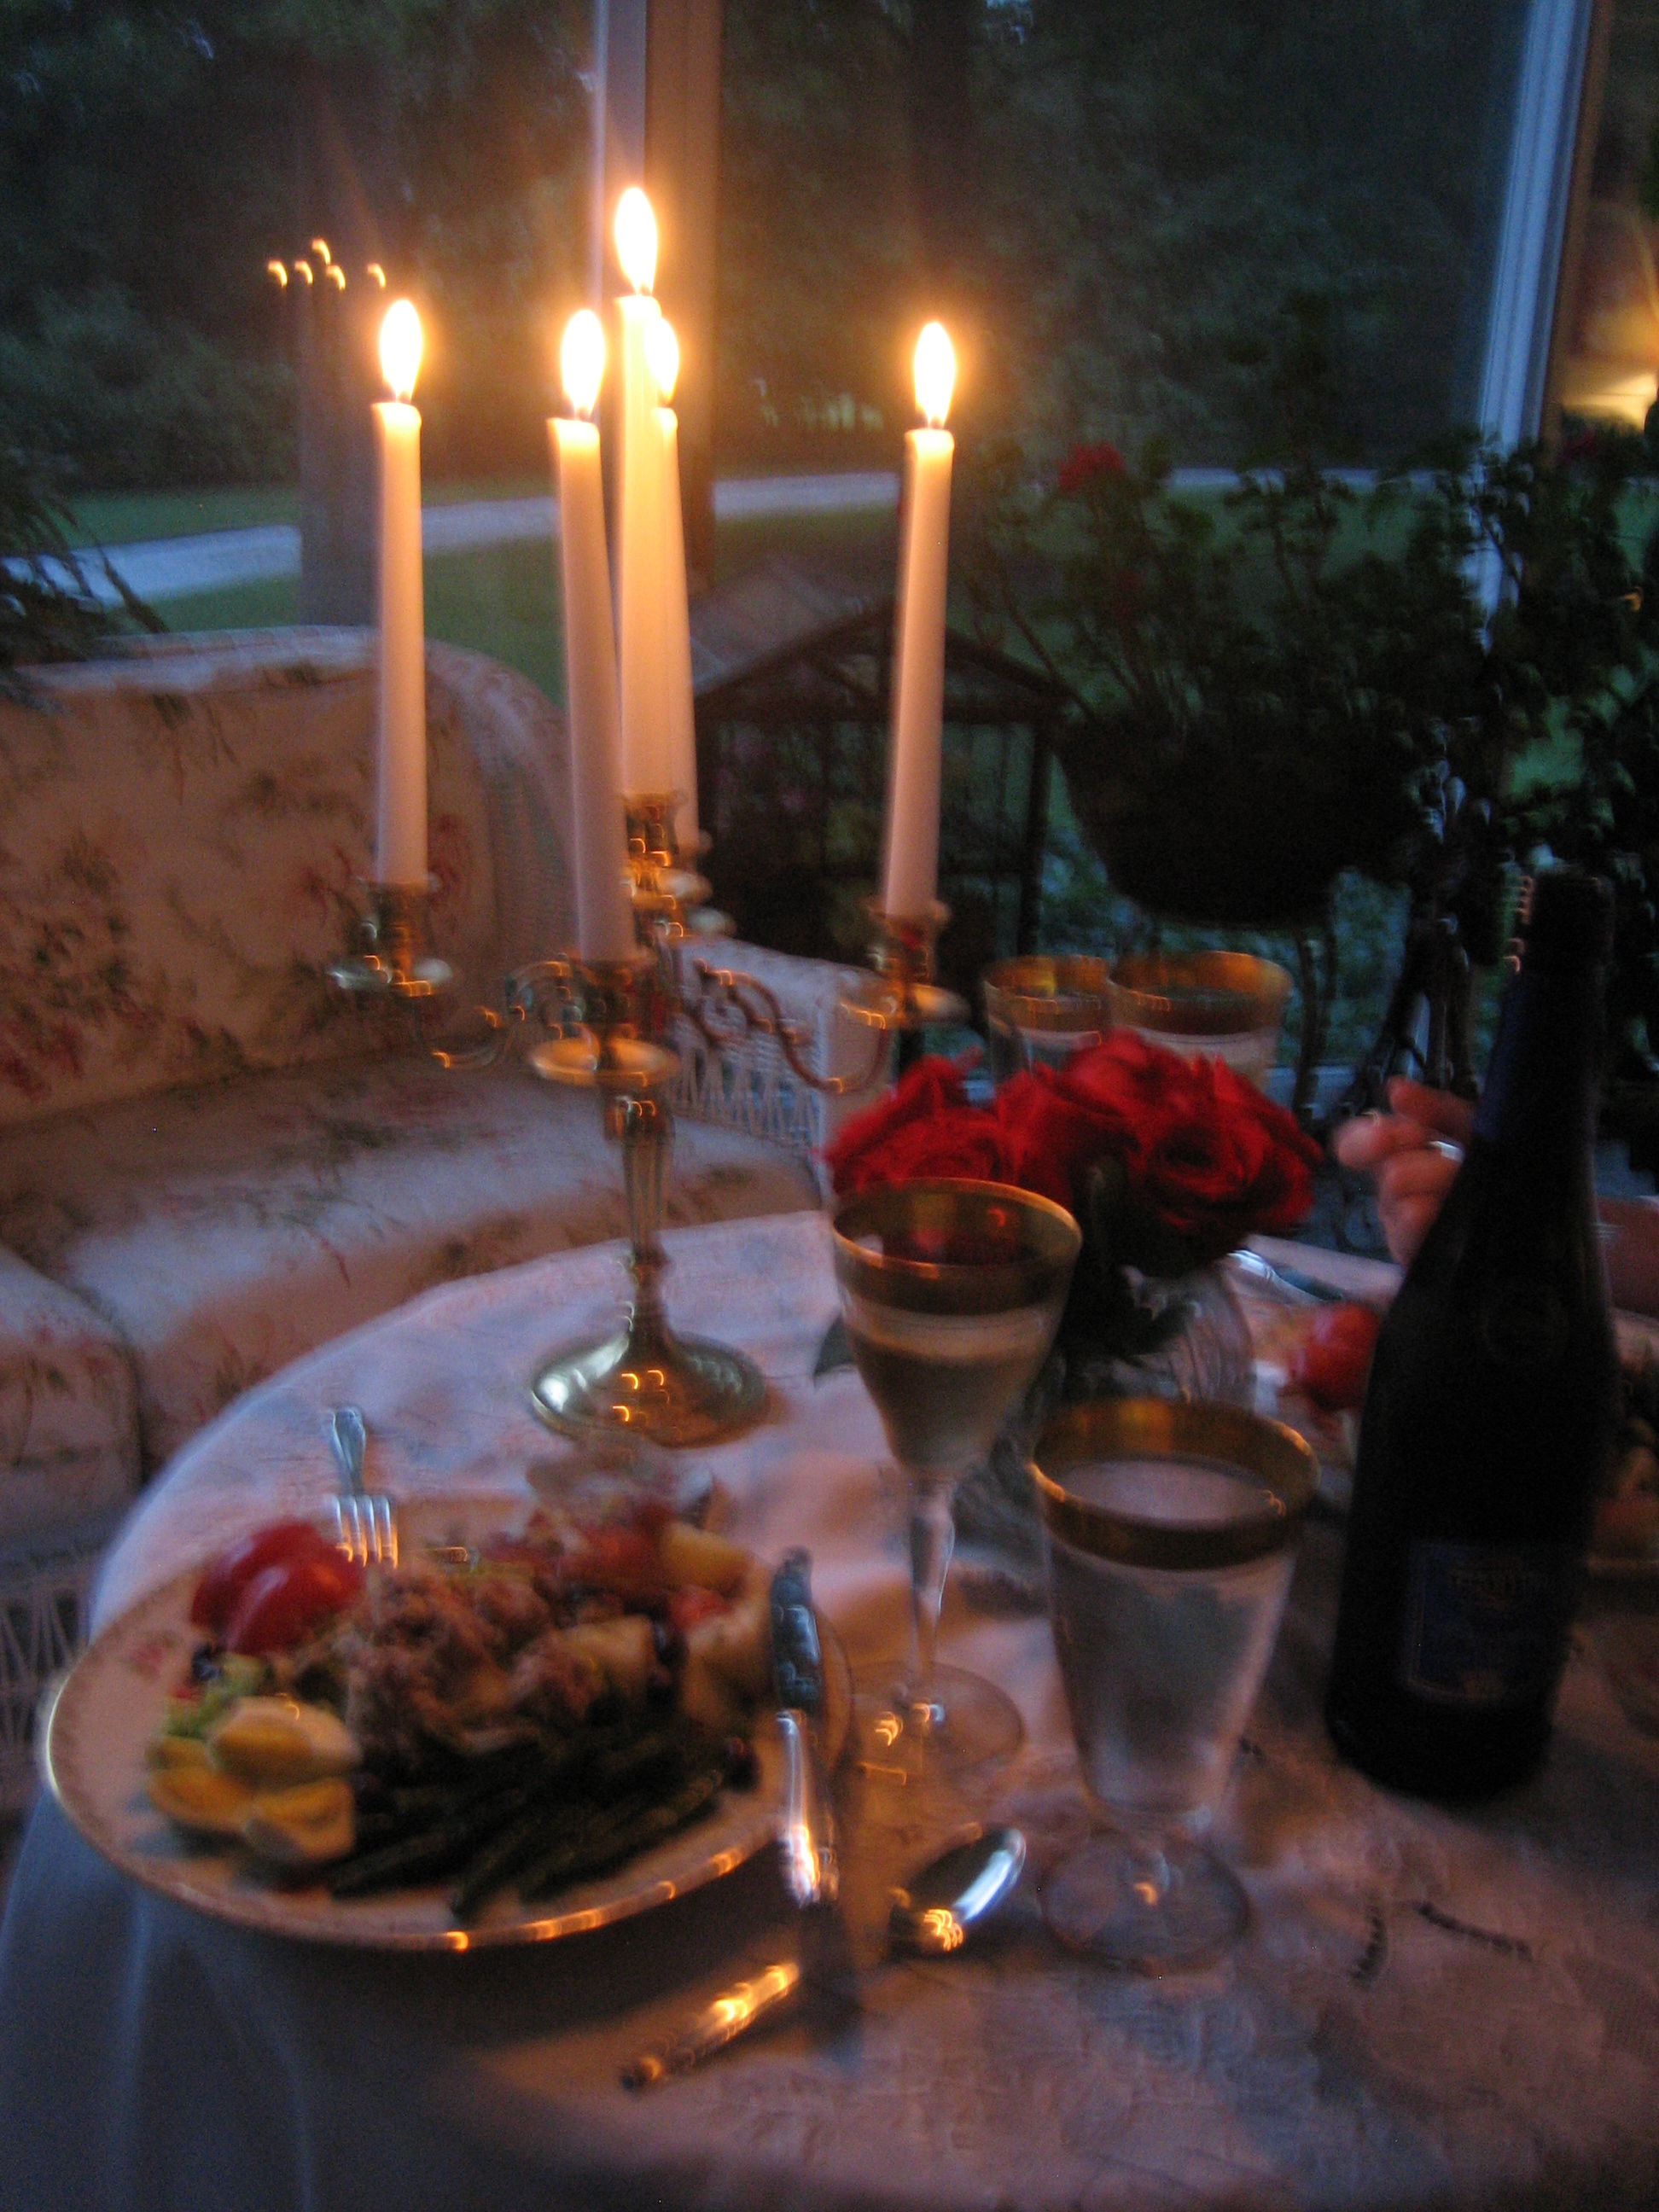 Romantic Dinner For Two Recipes: A Little Romance Please